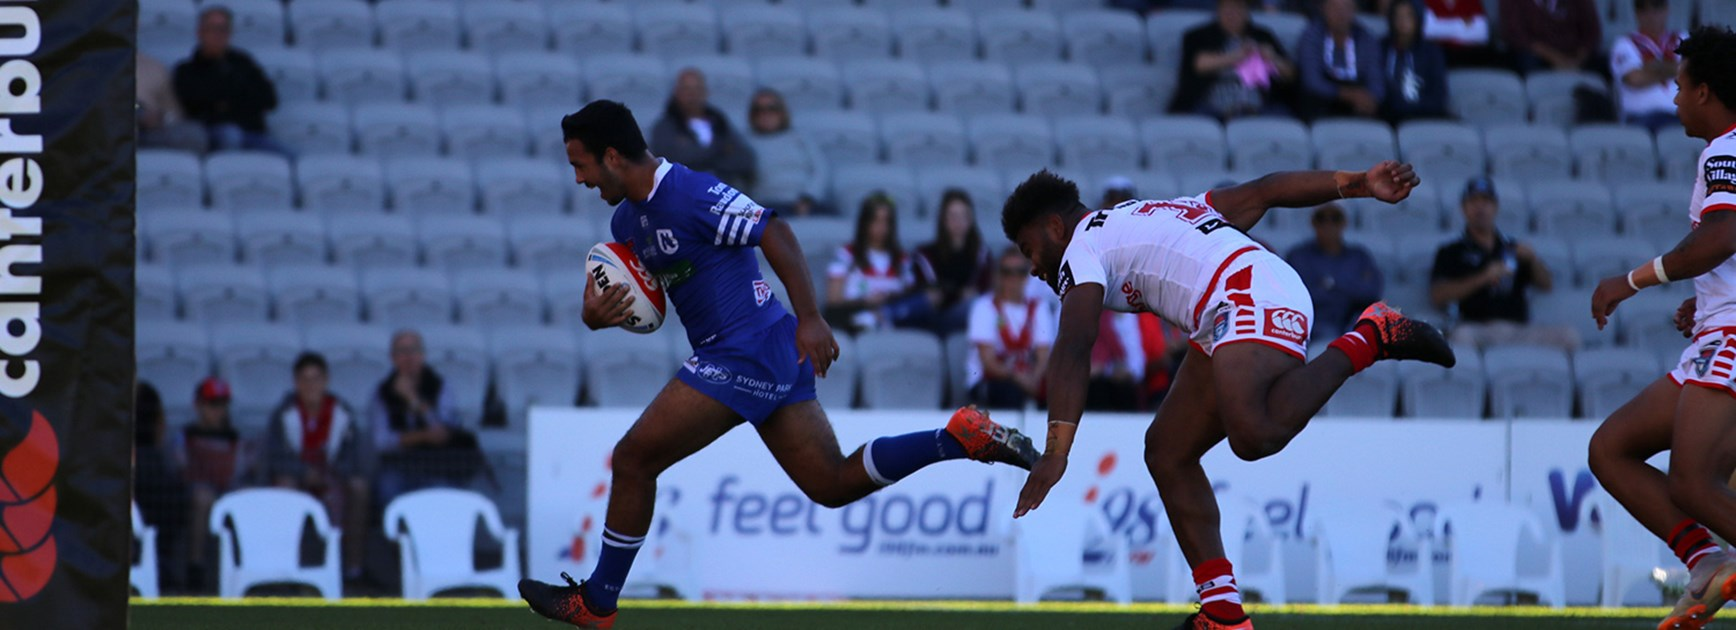 Jets soar to victory over Dragons